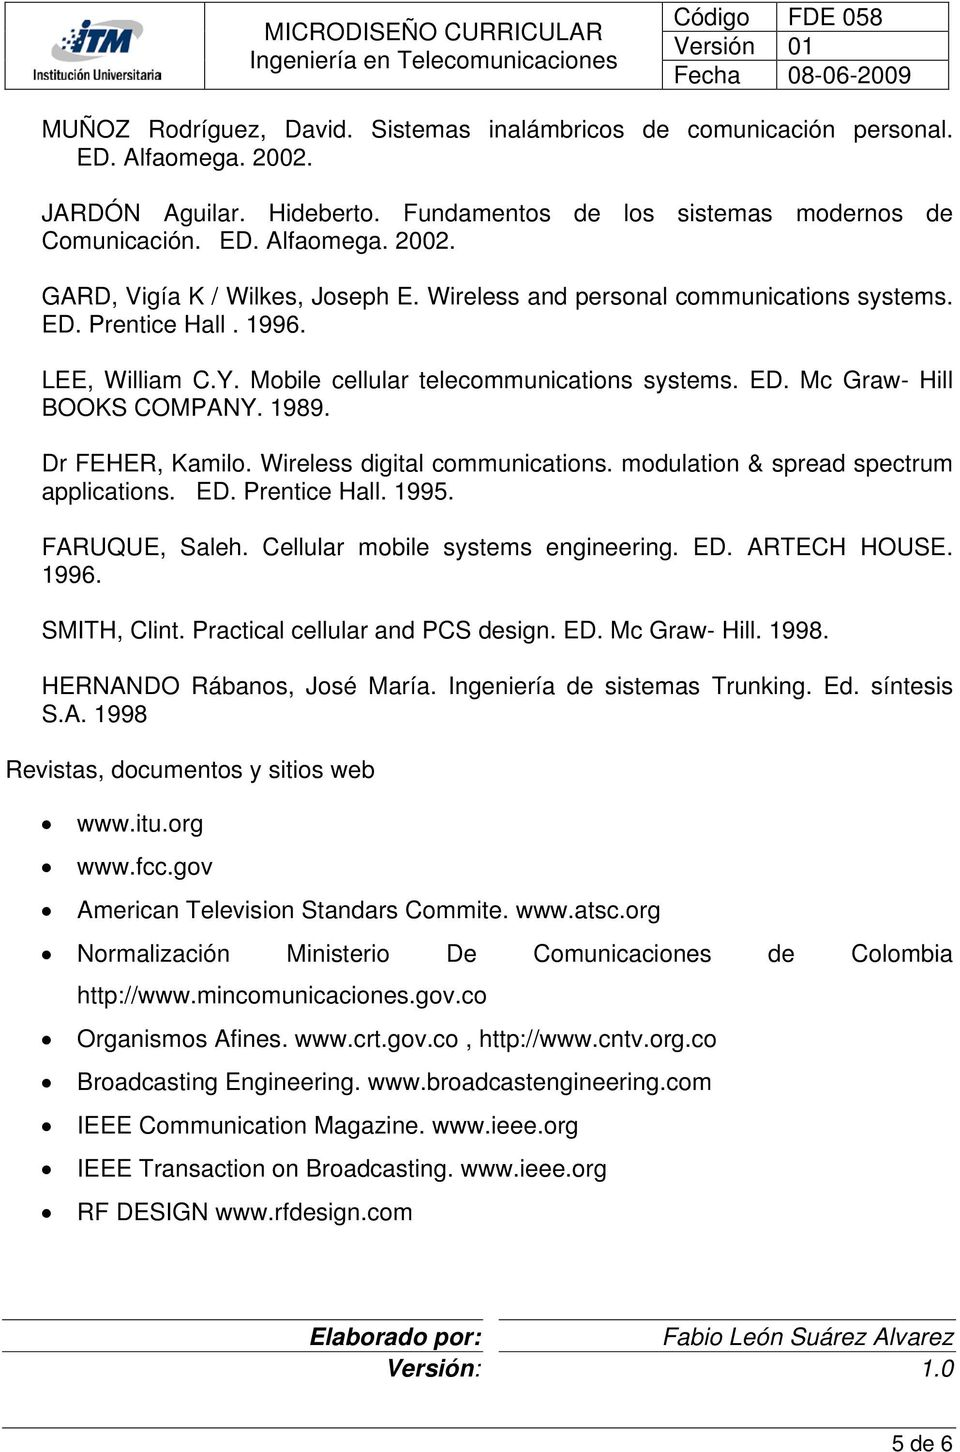 Wireless digital communications. modulation & spread spectrum applications. ED. Prentice Hall. 1995. FARUQUE, Saleh. Cellular mobile systems engineering. ED. ARTECH HOUSE. 1996. SMITH, Clint.